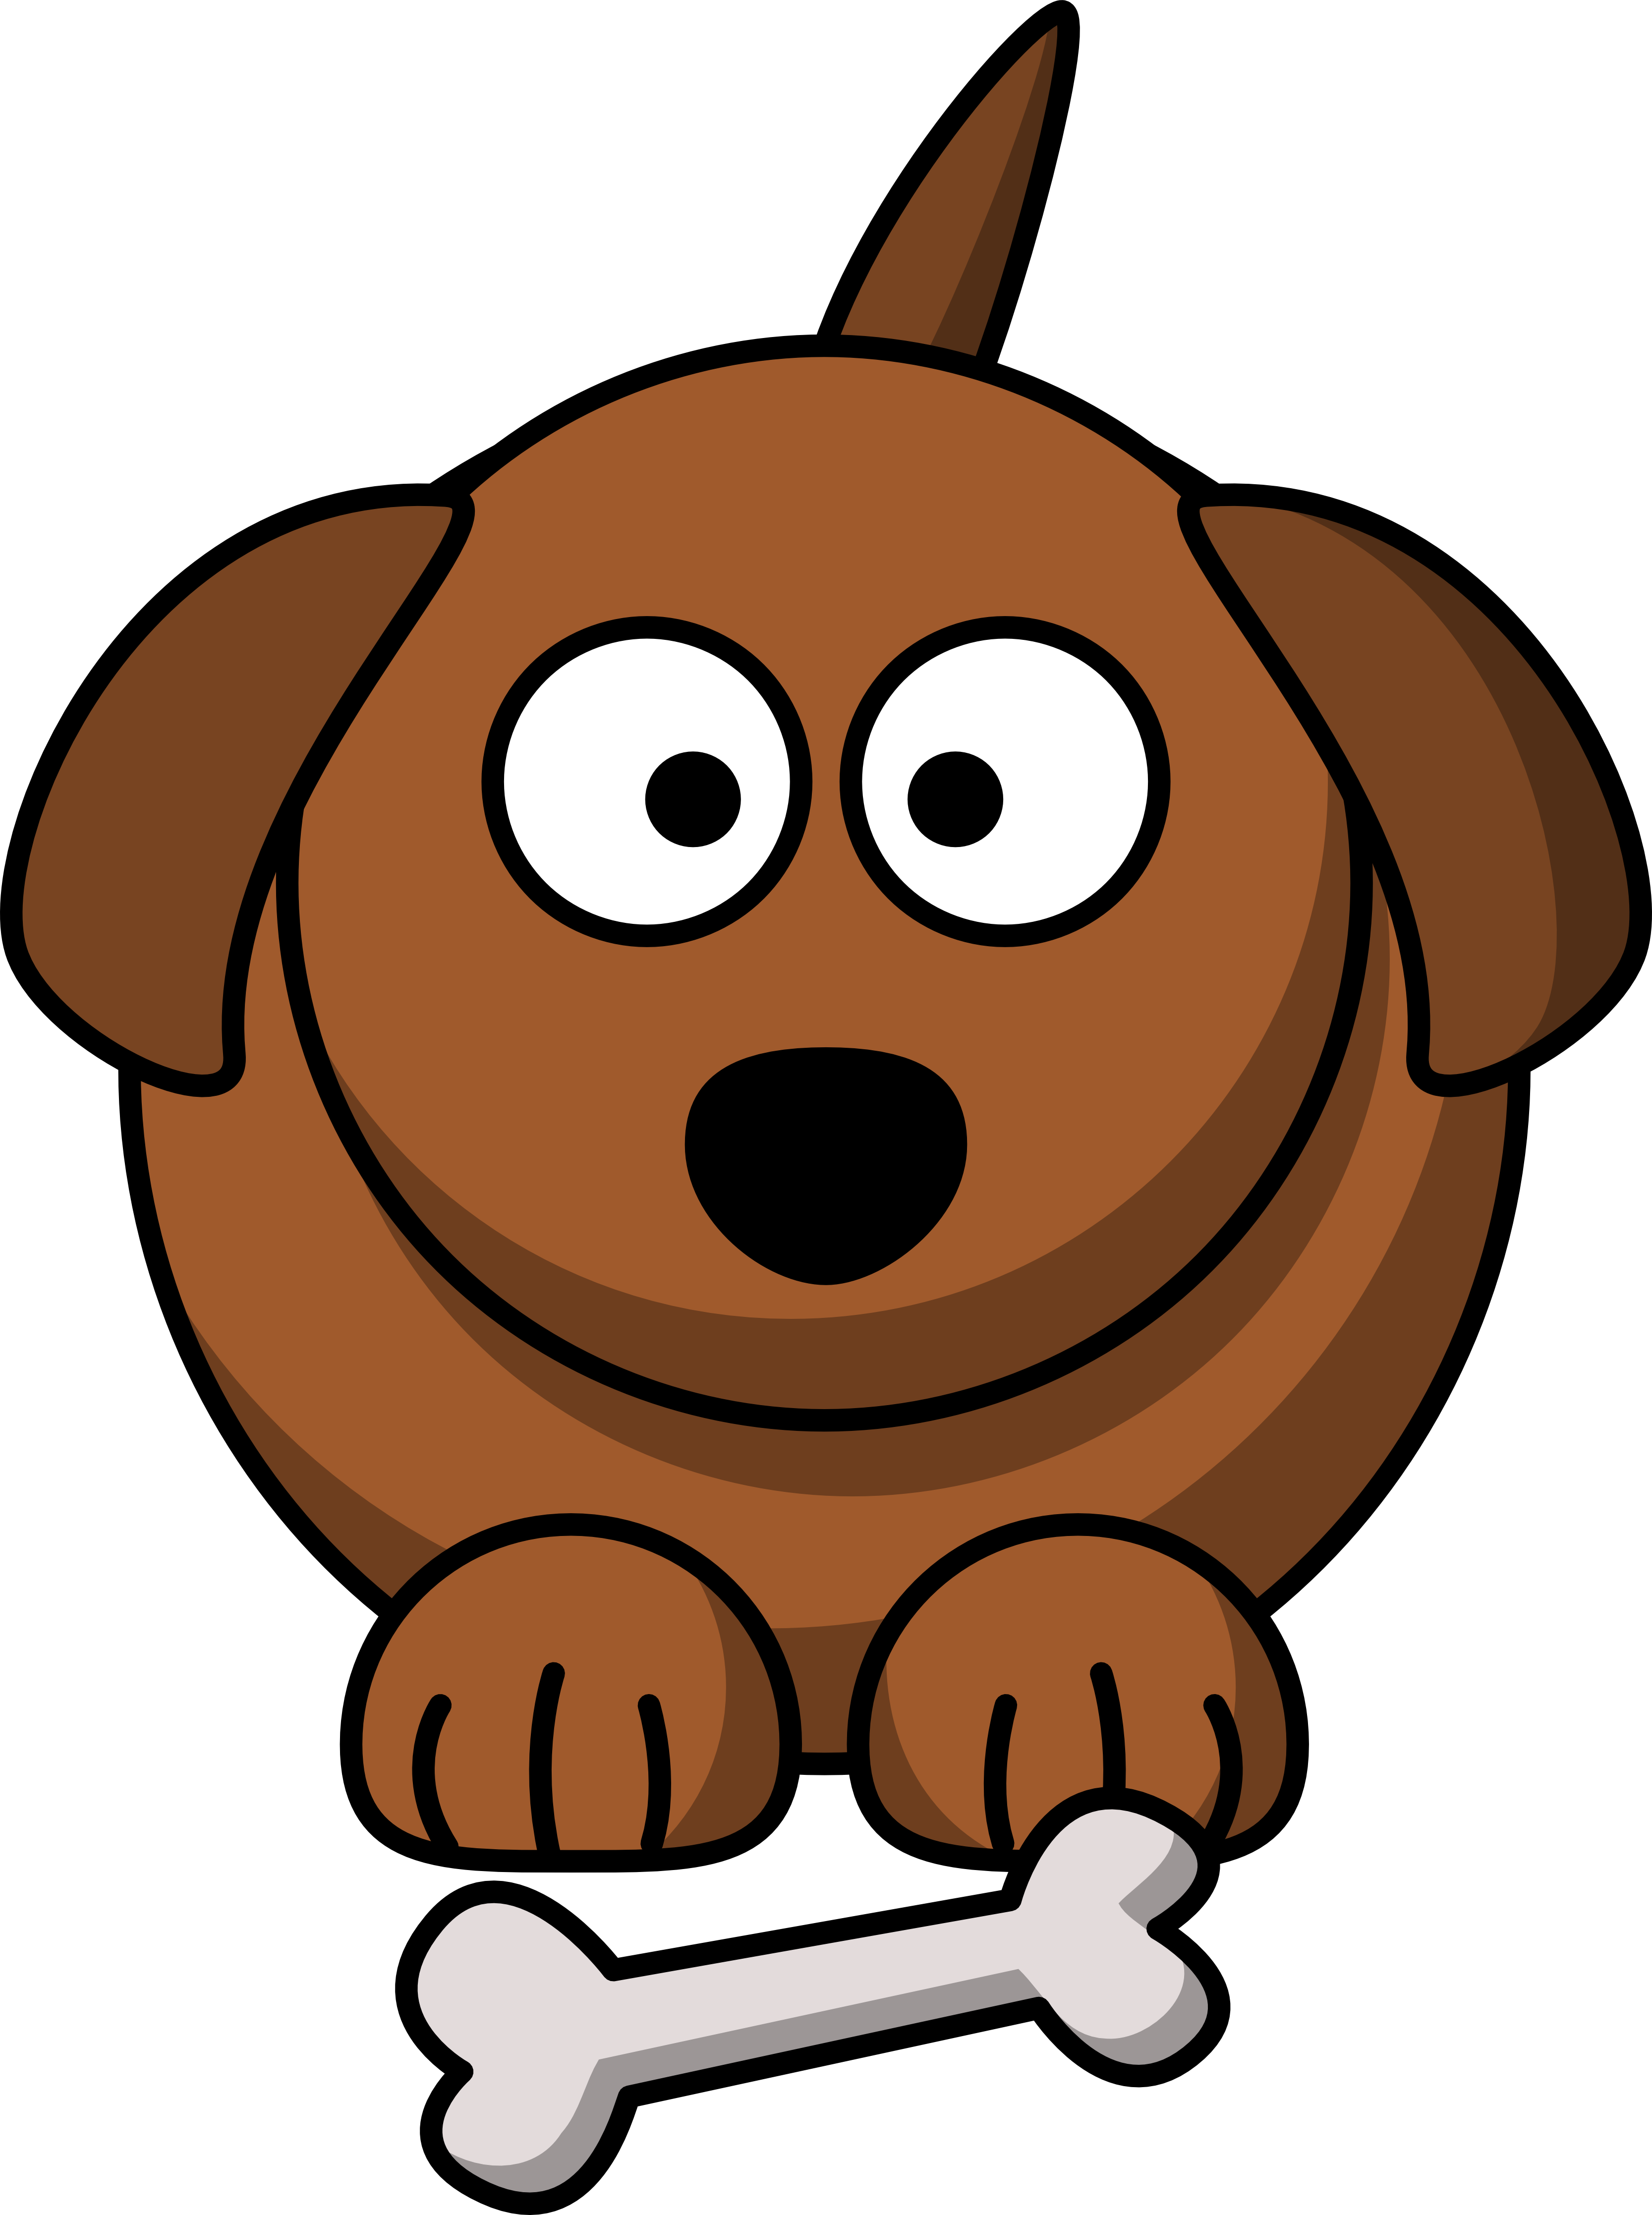 Eyes at getdrawings com. Clipart puppy girly